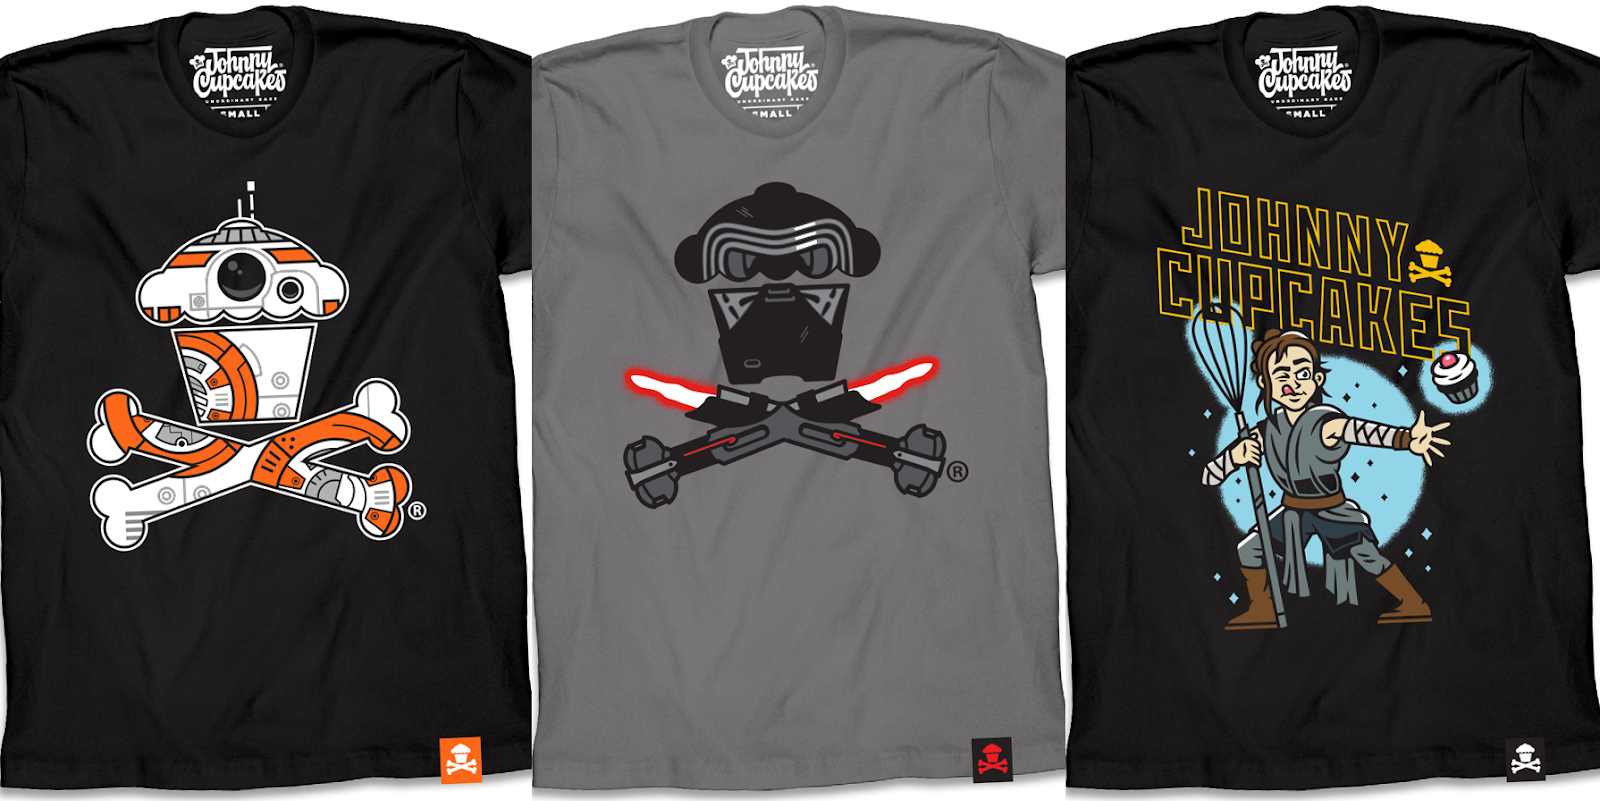 The Blot Says Star Wars The Rise Of Skywalker T Shirt Collection By Johnny Cupcakes